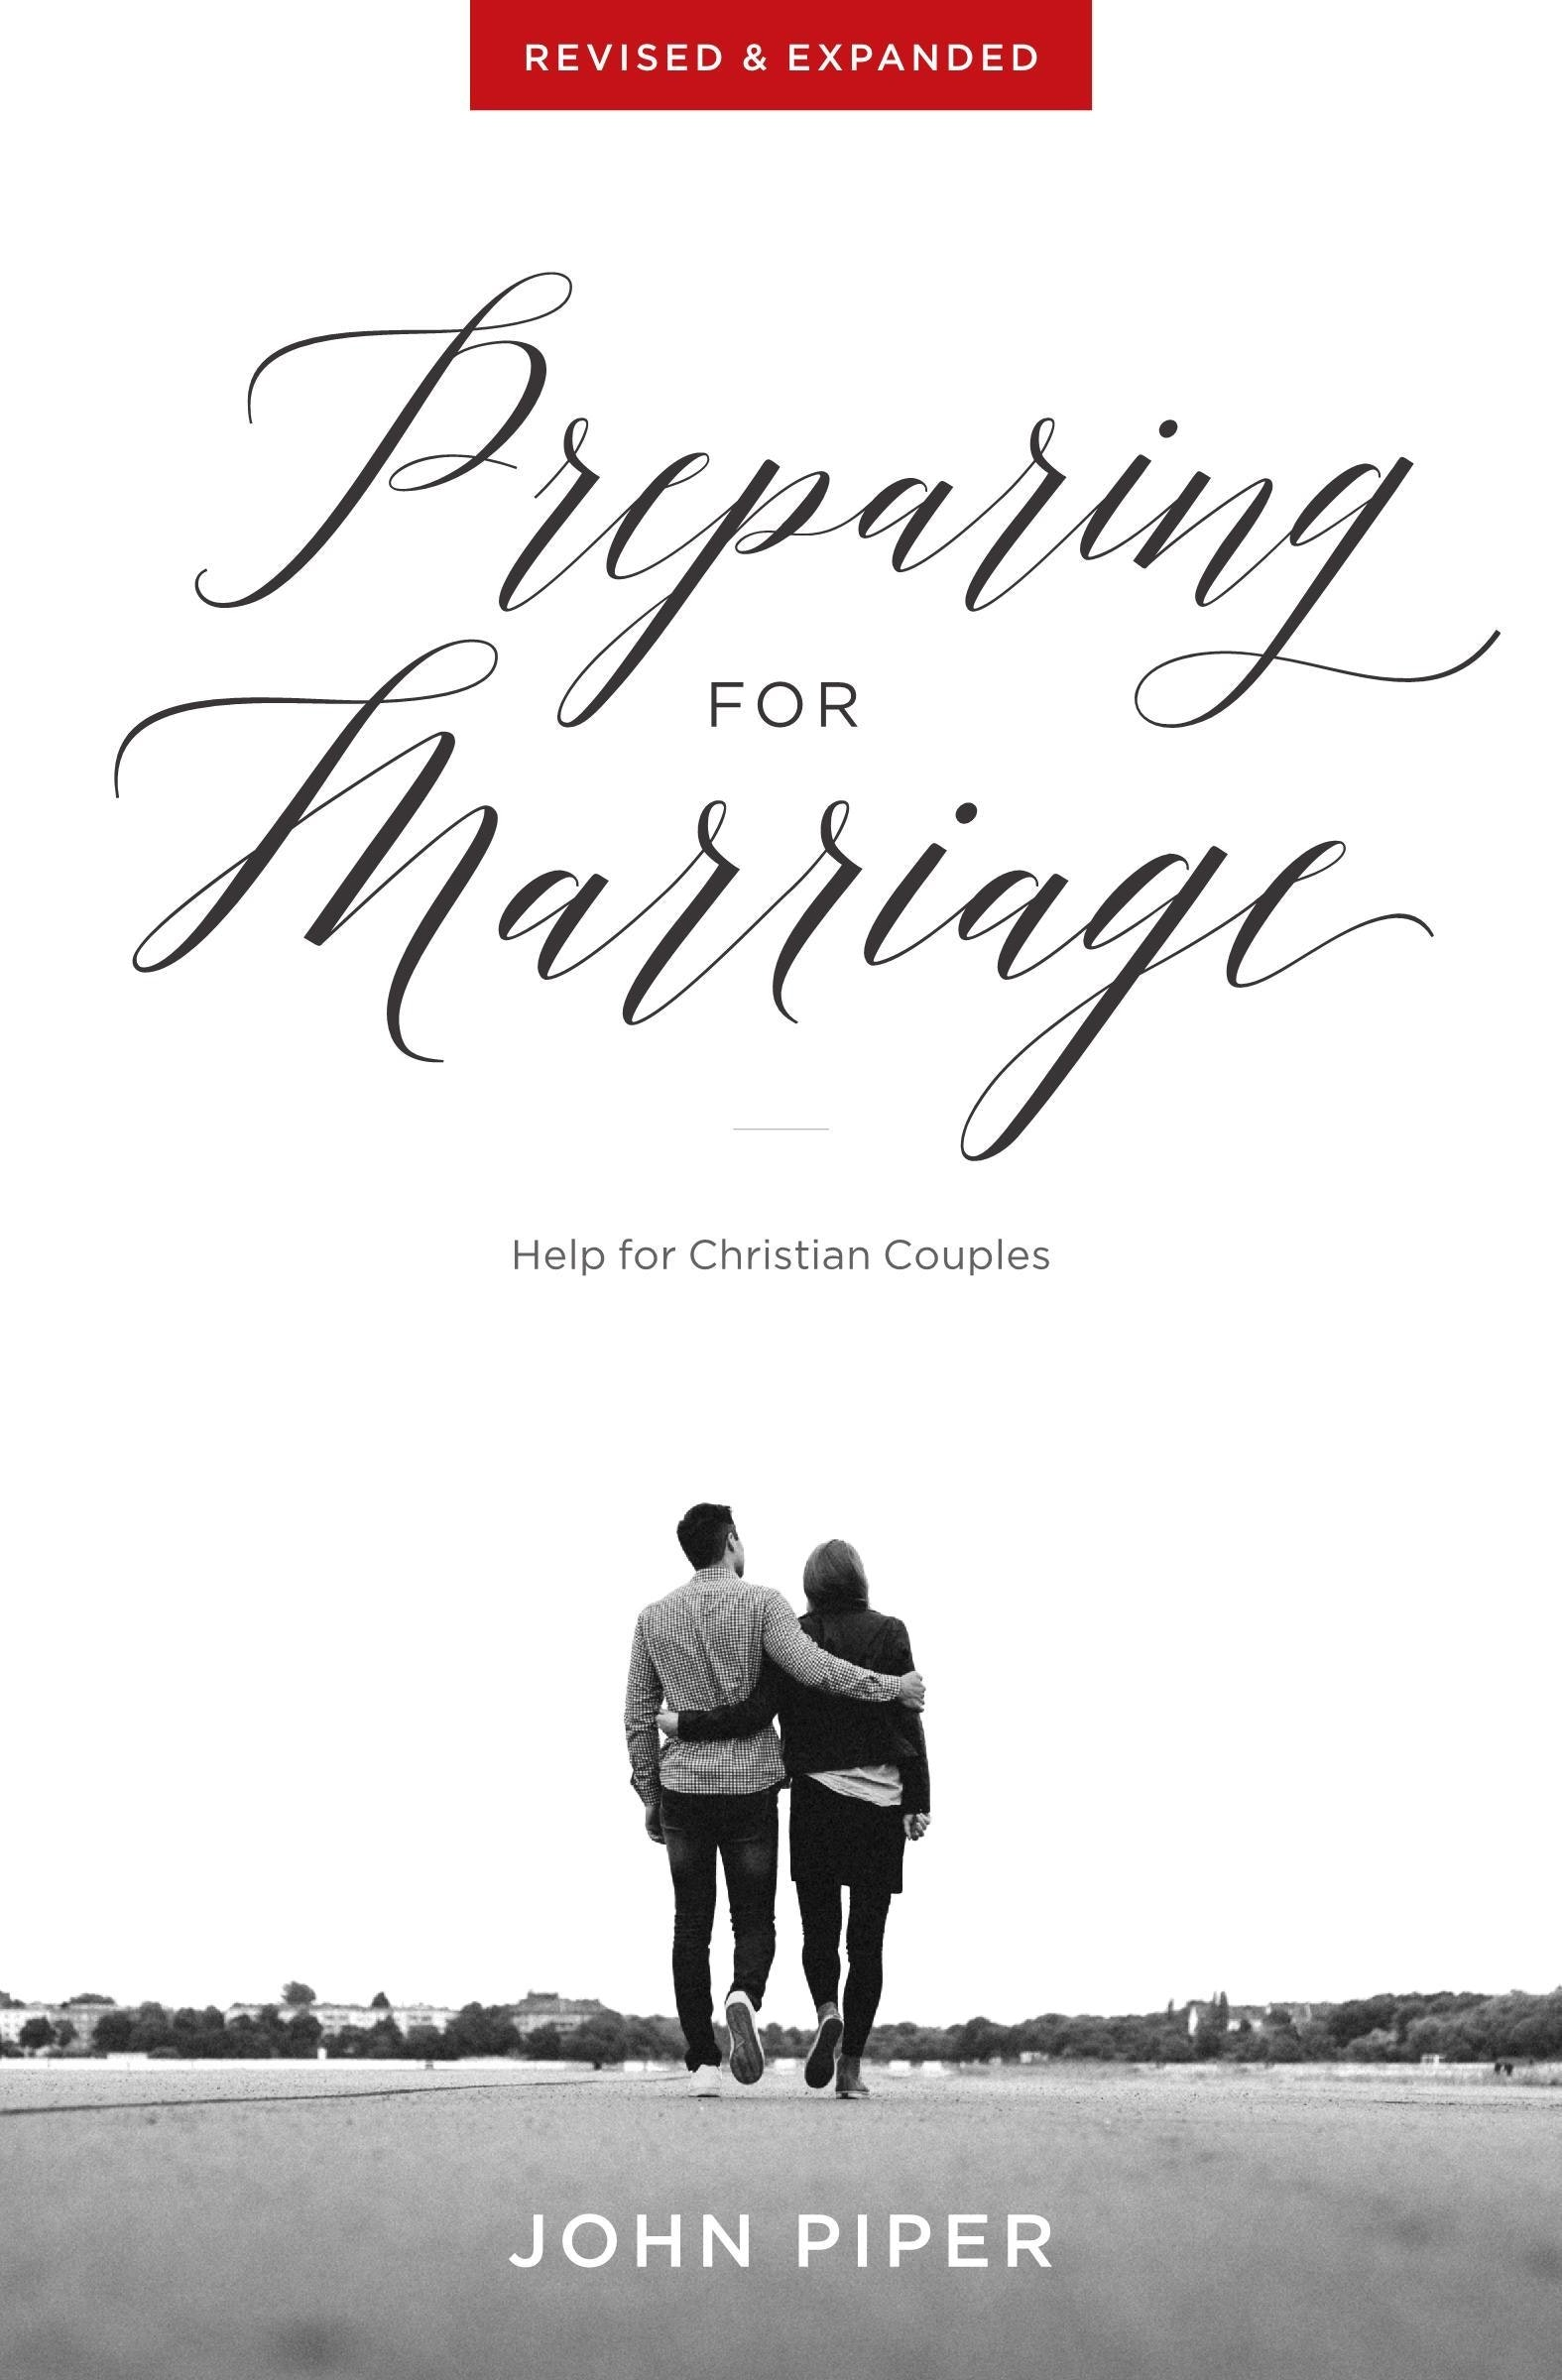 Devotions for dating or engaged couples living